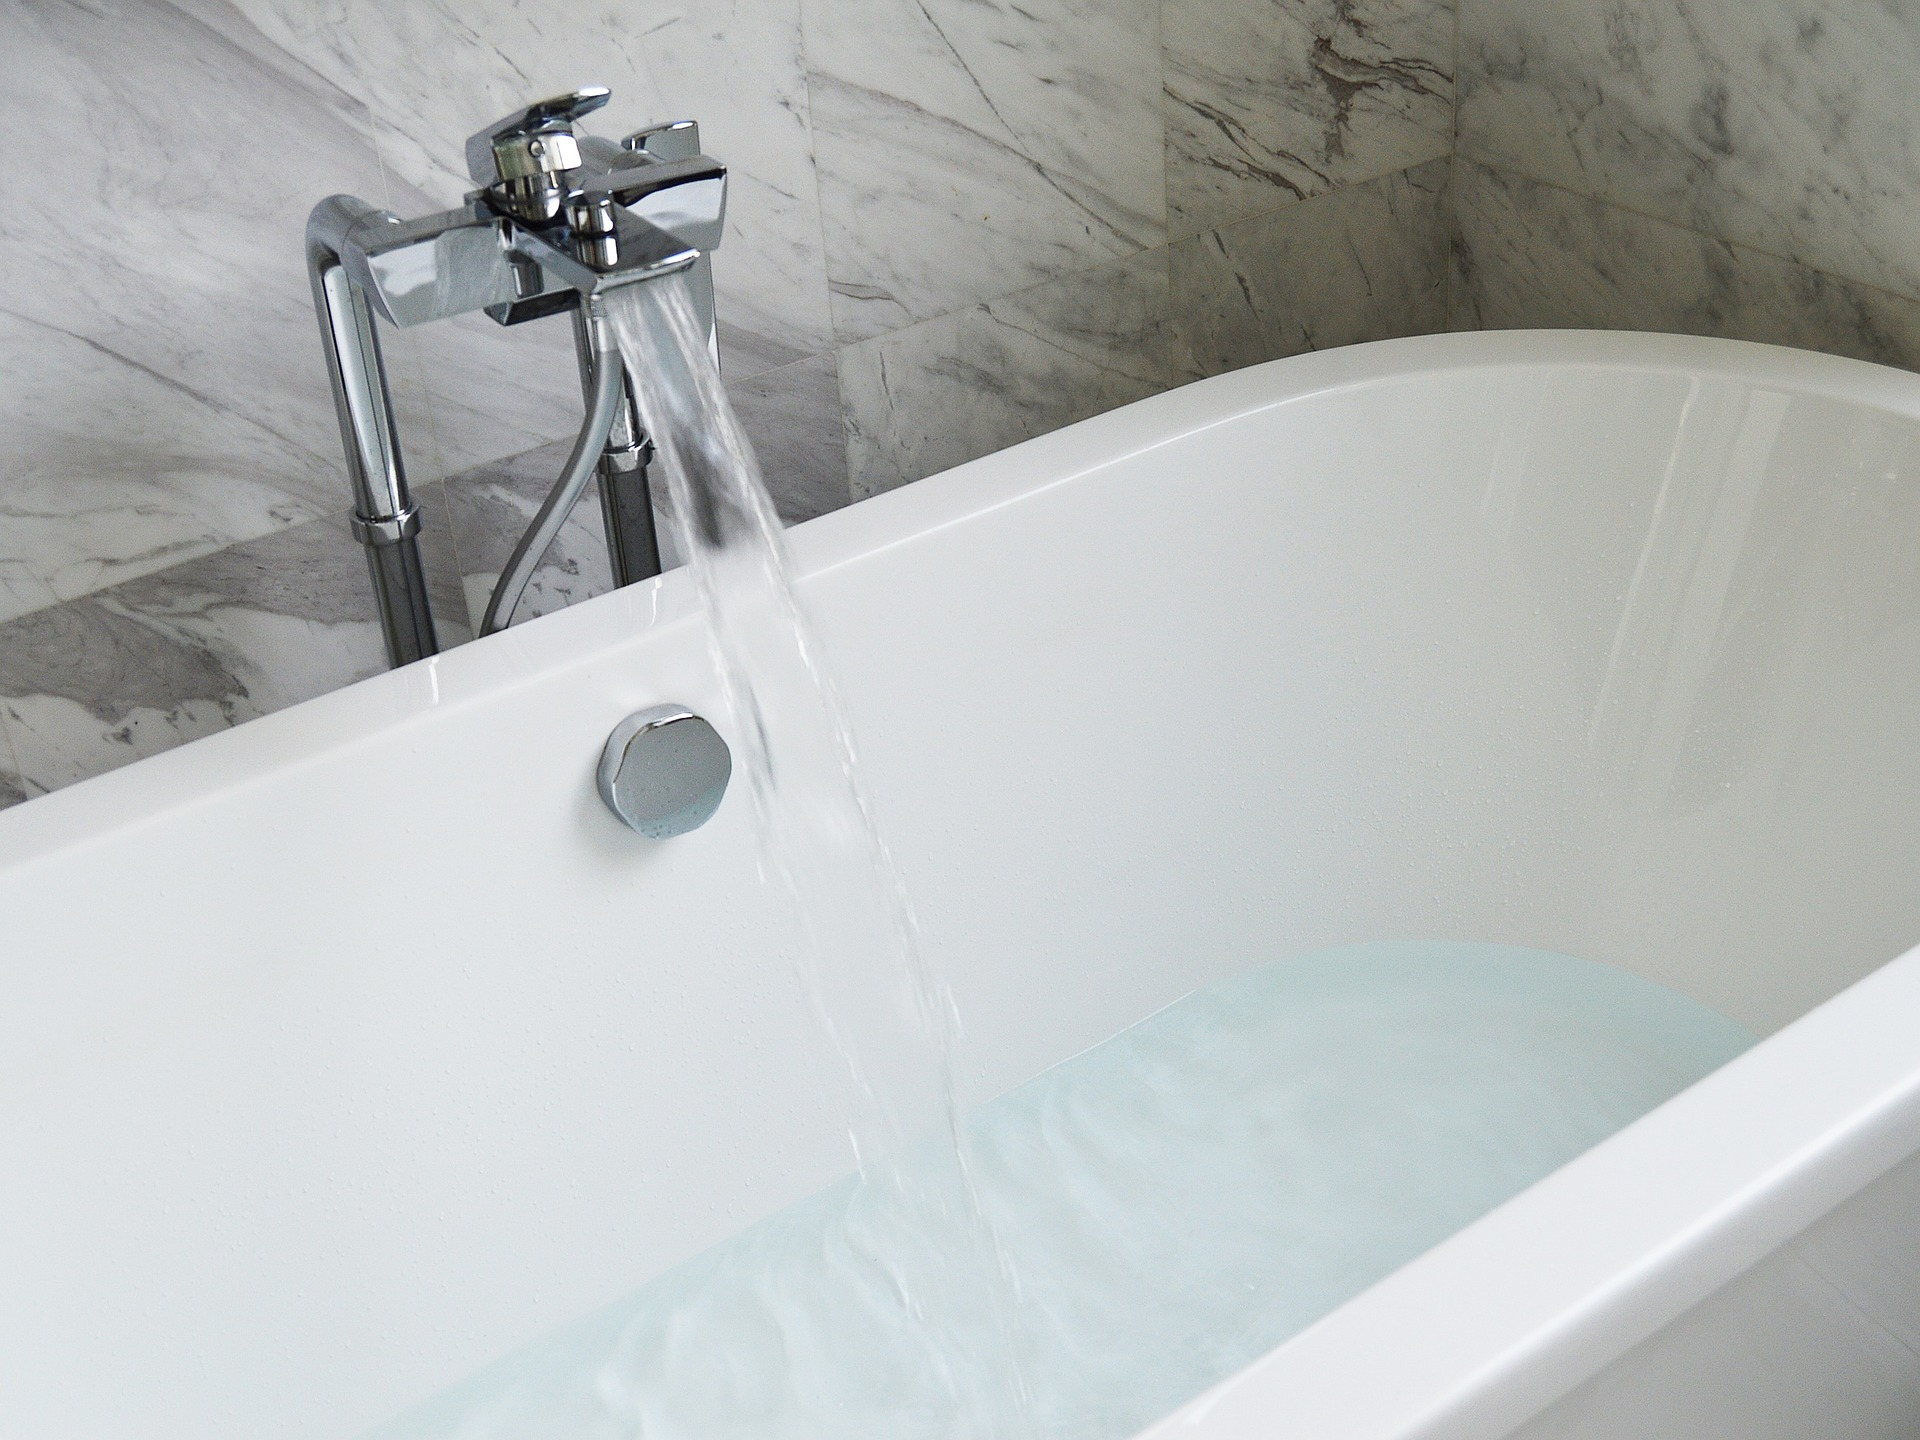 Best Bathroom And Kitchen Cleaning Tips Bathtub 890227_1920 300x225